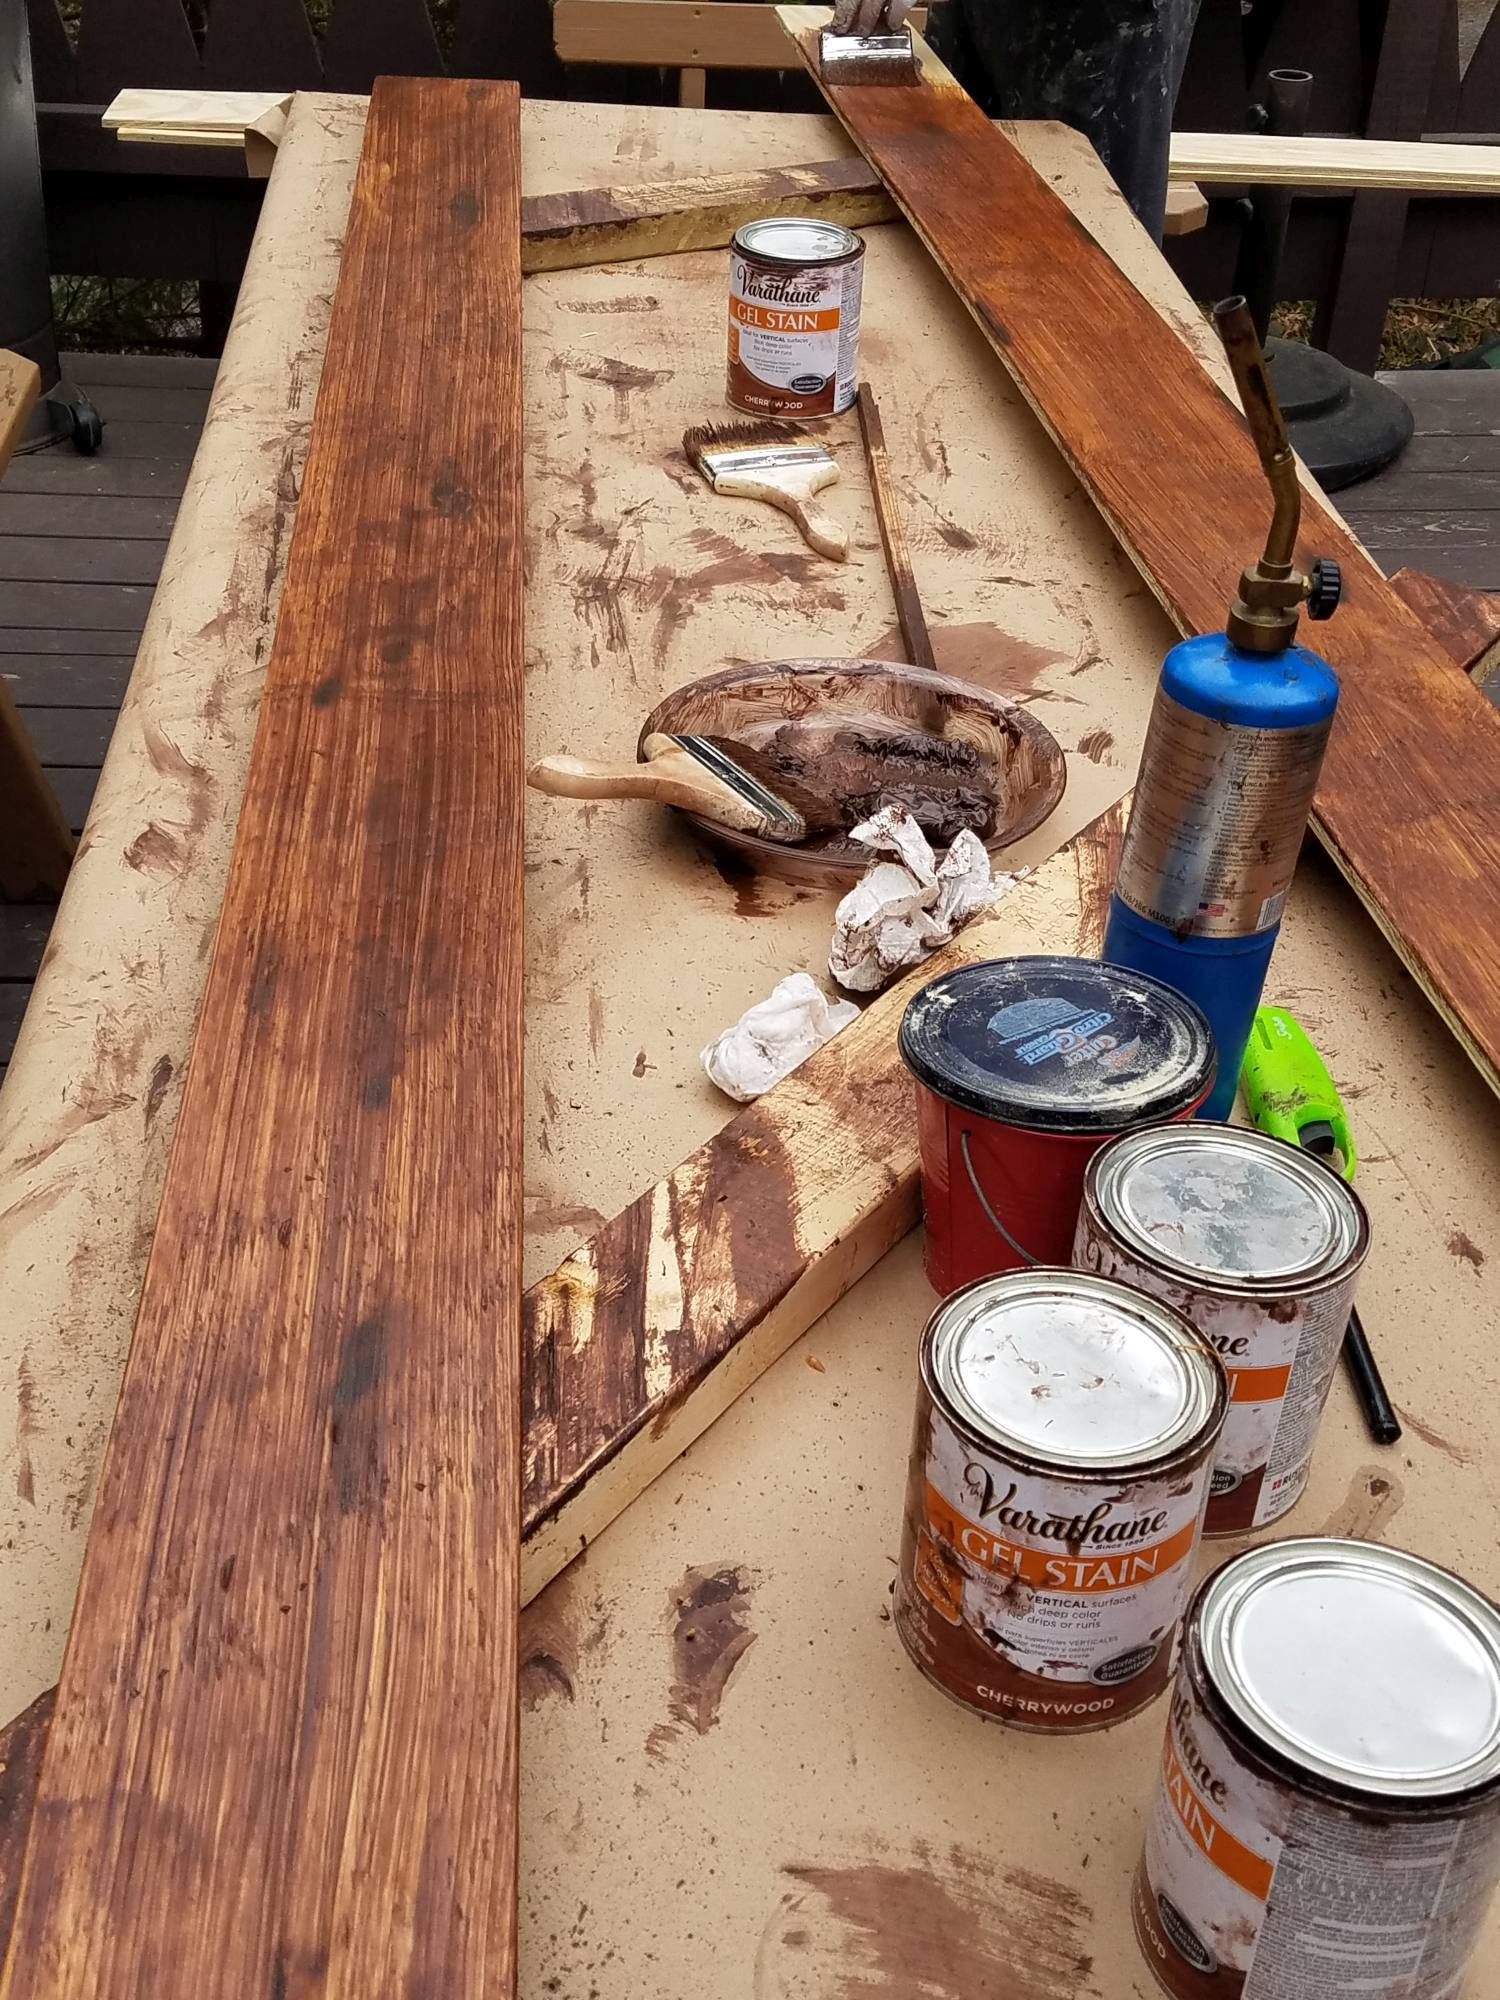 DIY Farmhouse Wide Plank Flooring Made From Plywood - Applying Gel Stain and distressing to the wide plank plywood floor boards